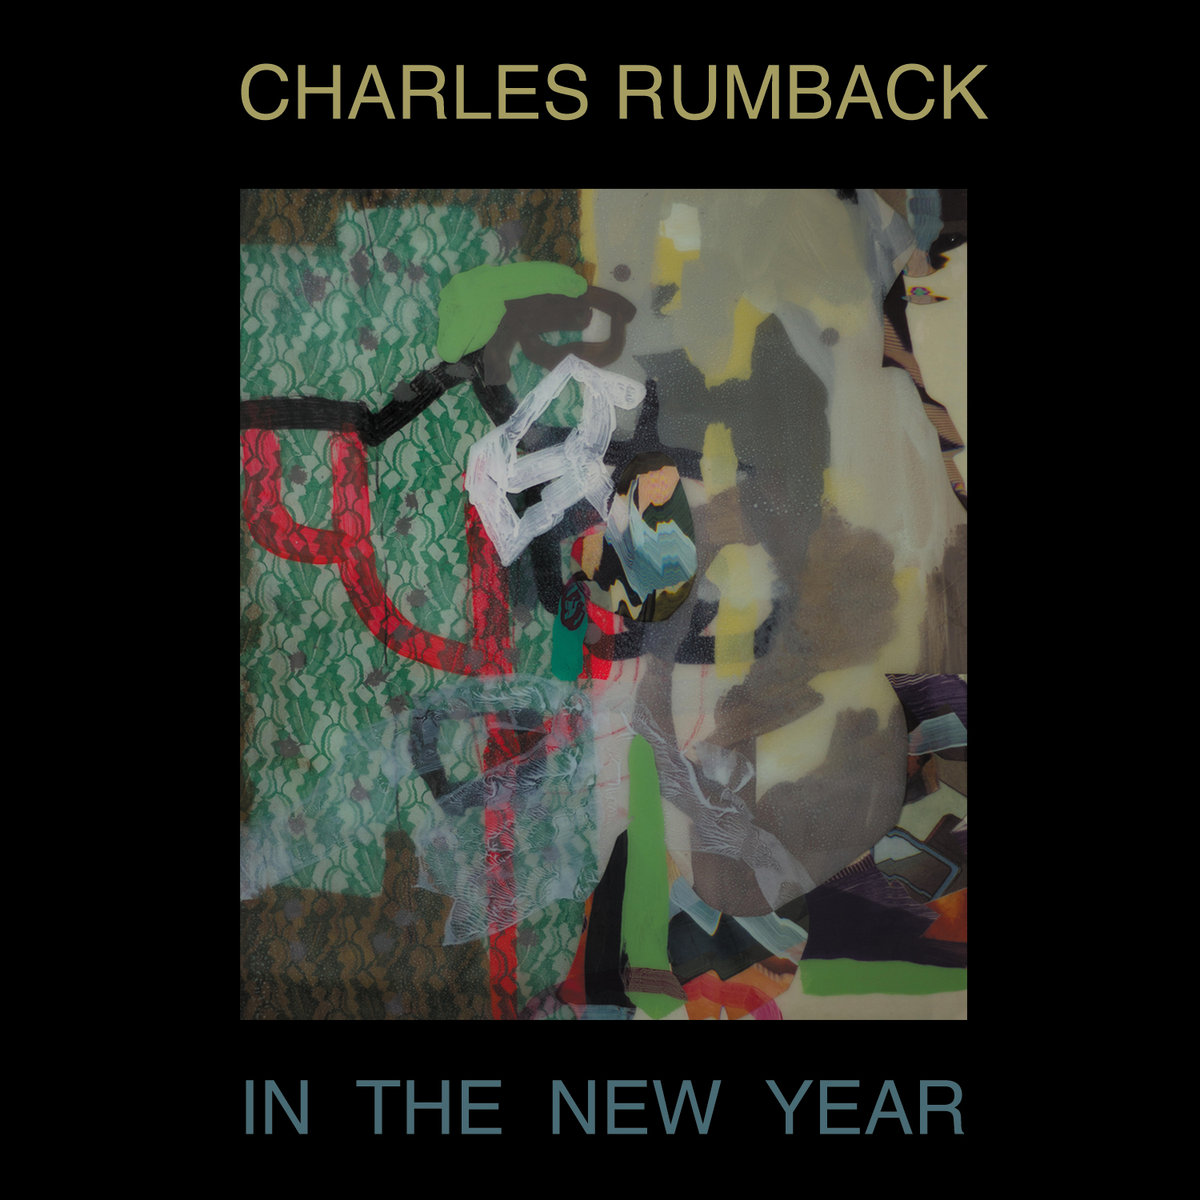 Charles Rumback Quintet: In the New Year (Ears and Eyes Records 2015)